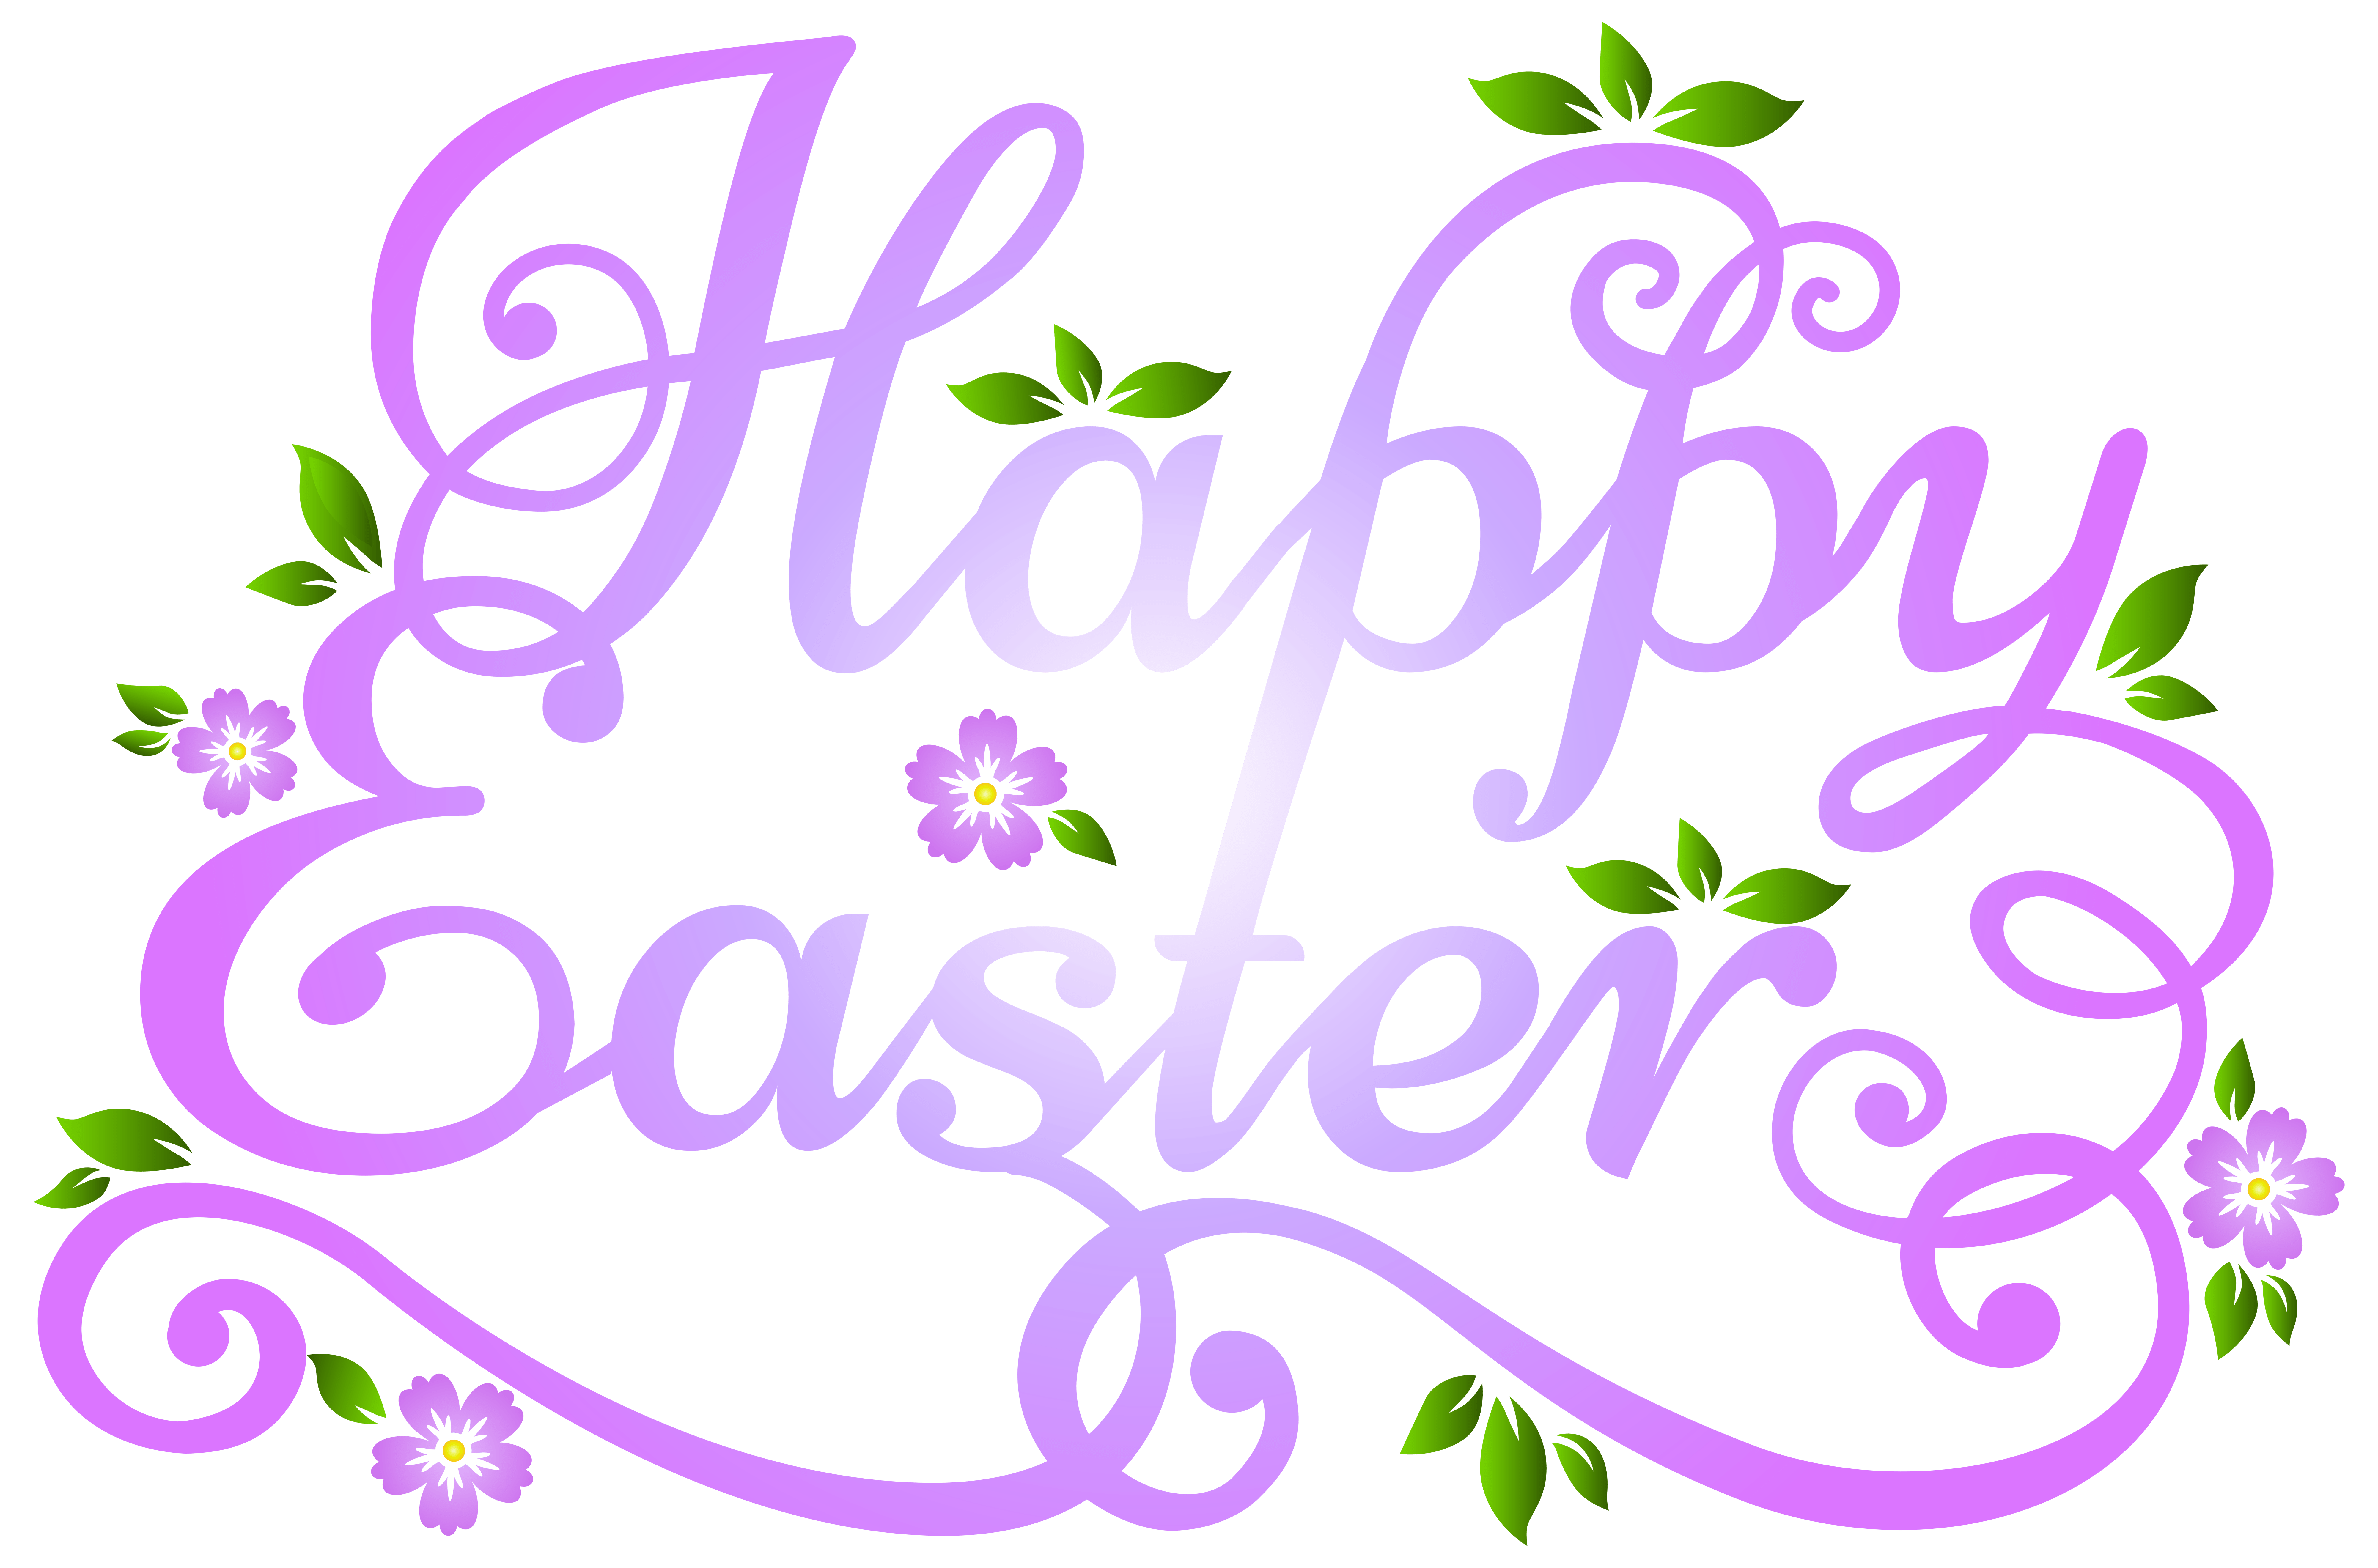 Free happy easter clipart religious image black and white stock Religious happy easter clipart clipart images gallery for free ... image black and white stock